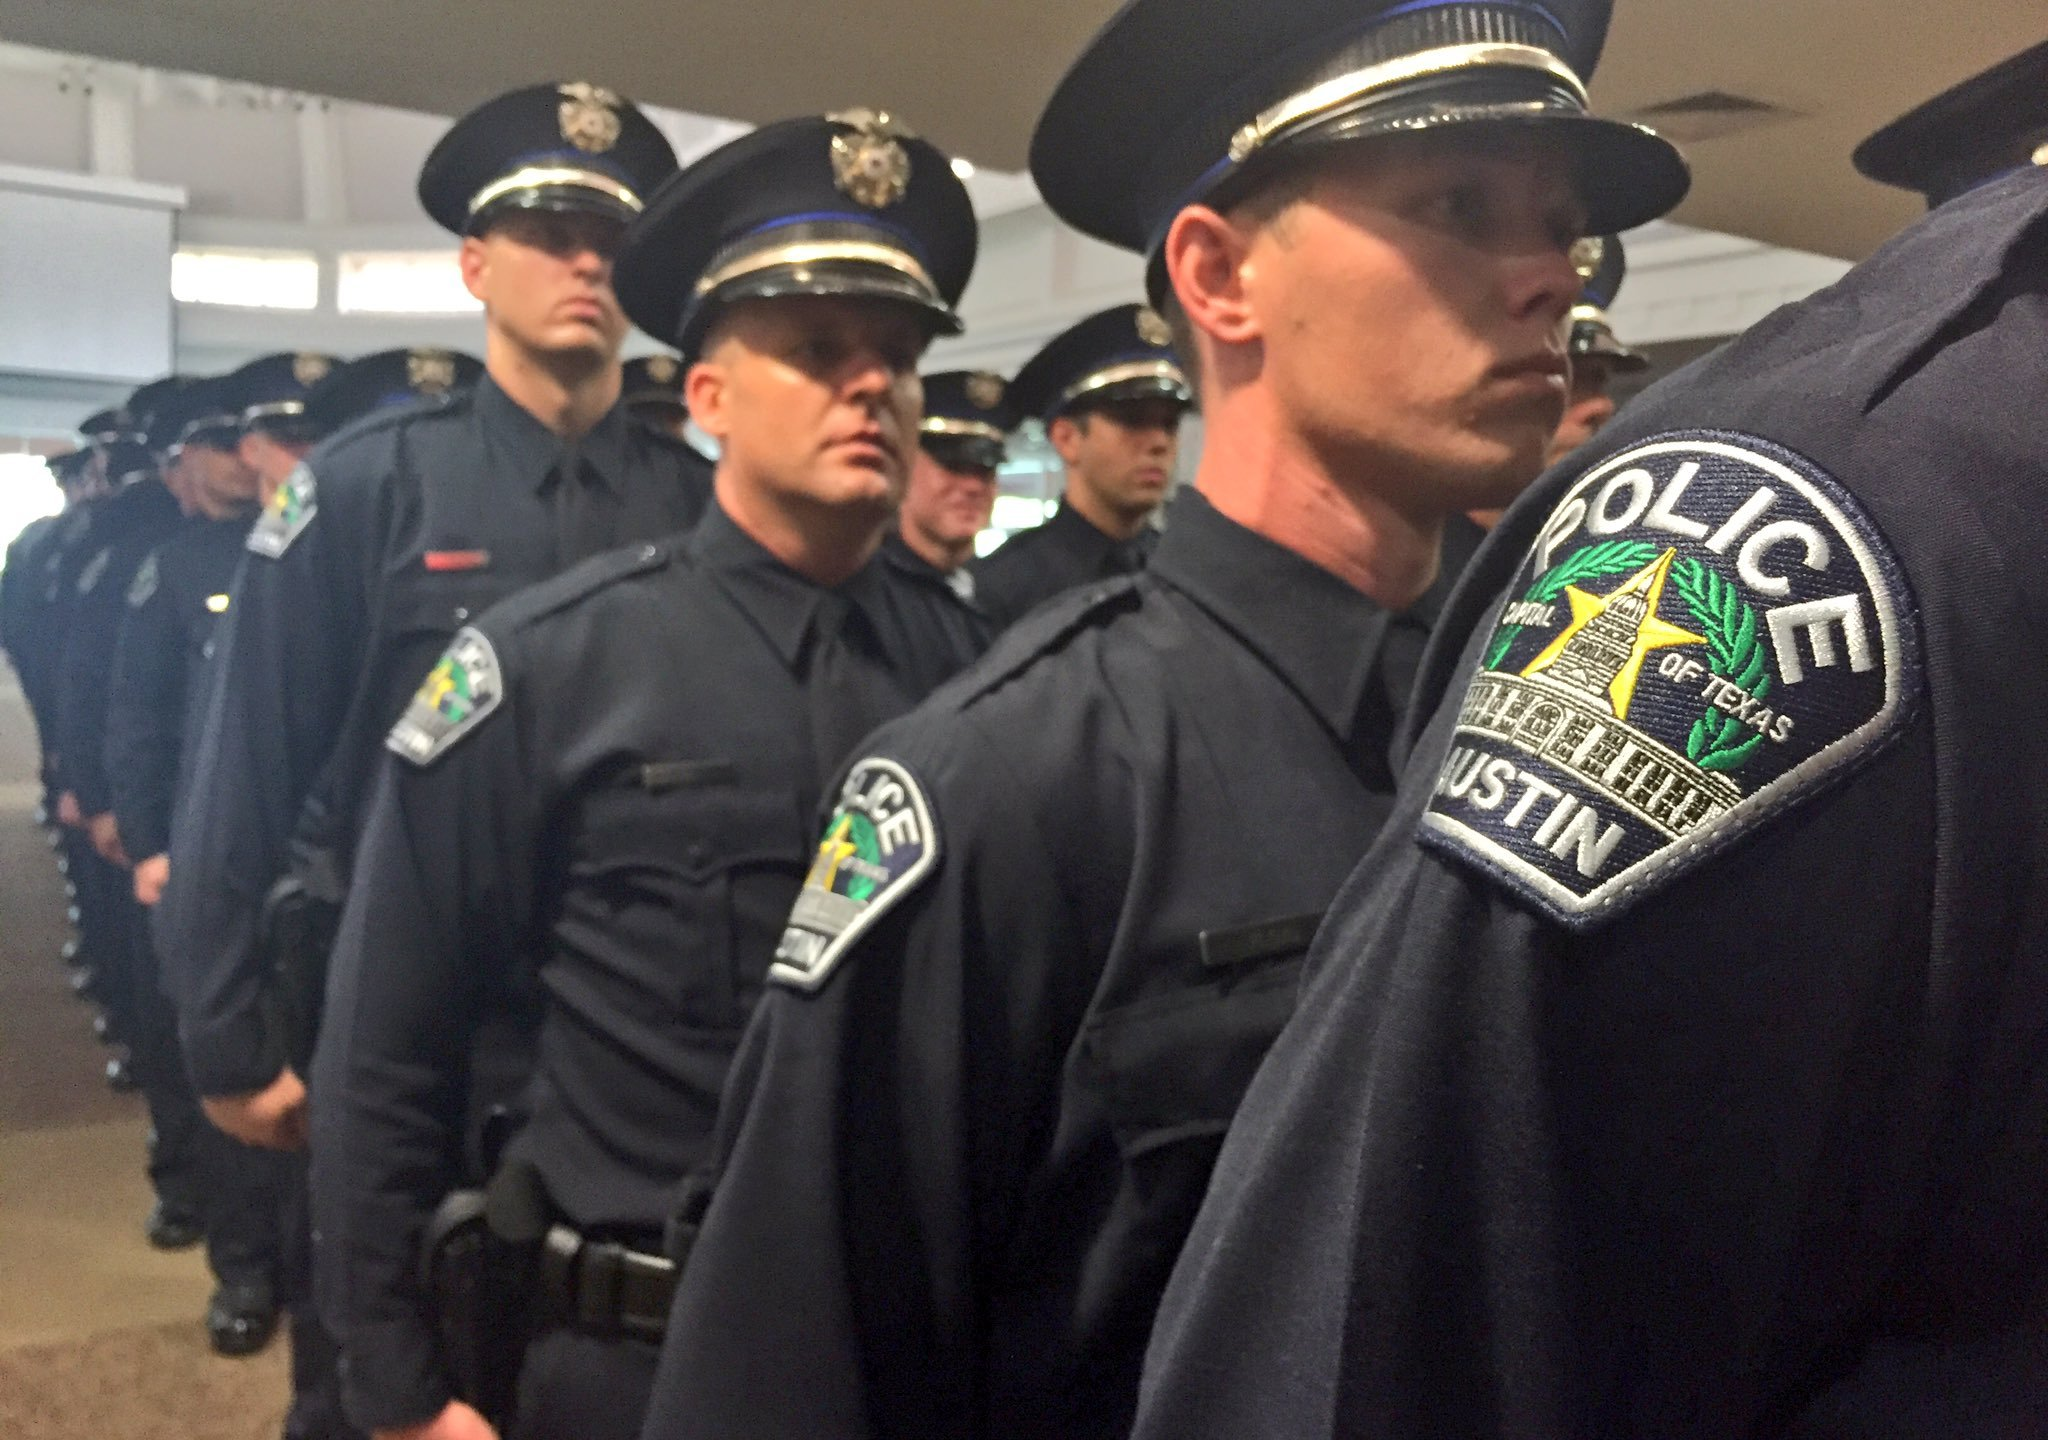 Austin police cadets at their graduation on July 8, 2016 (KXAN Photo_Alicia Inns)_309795